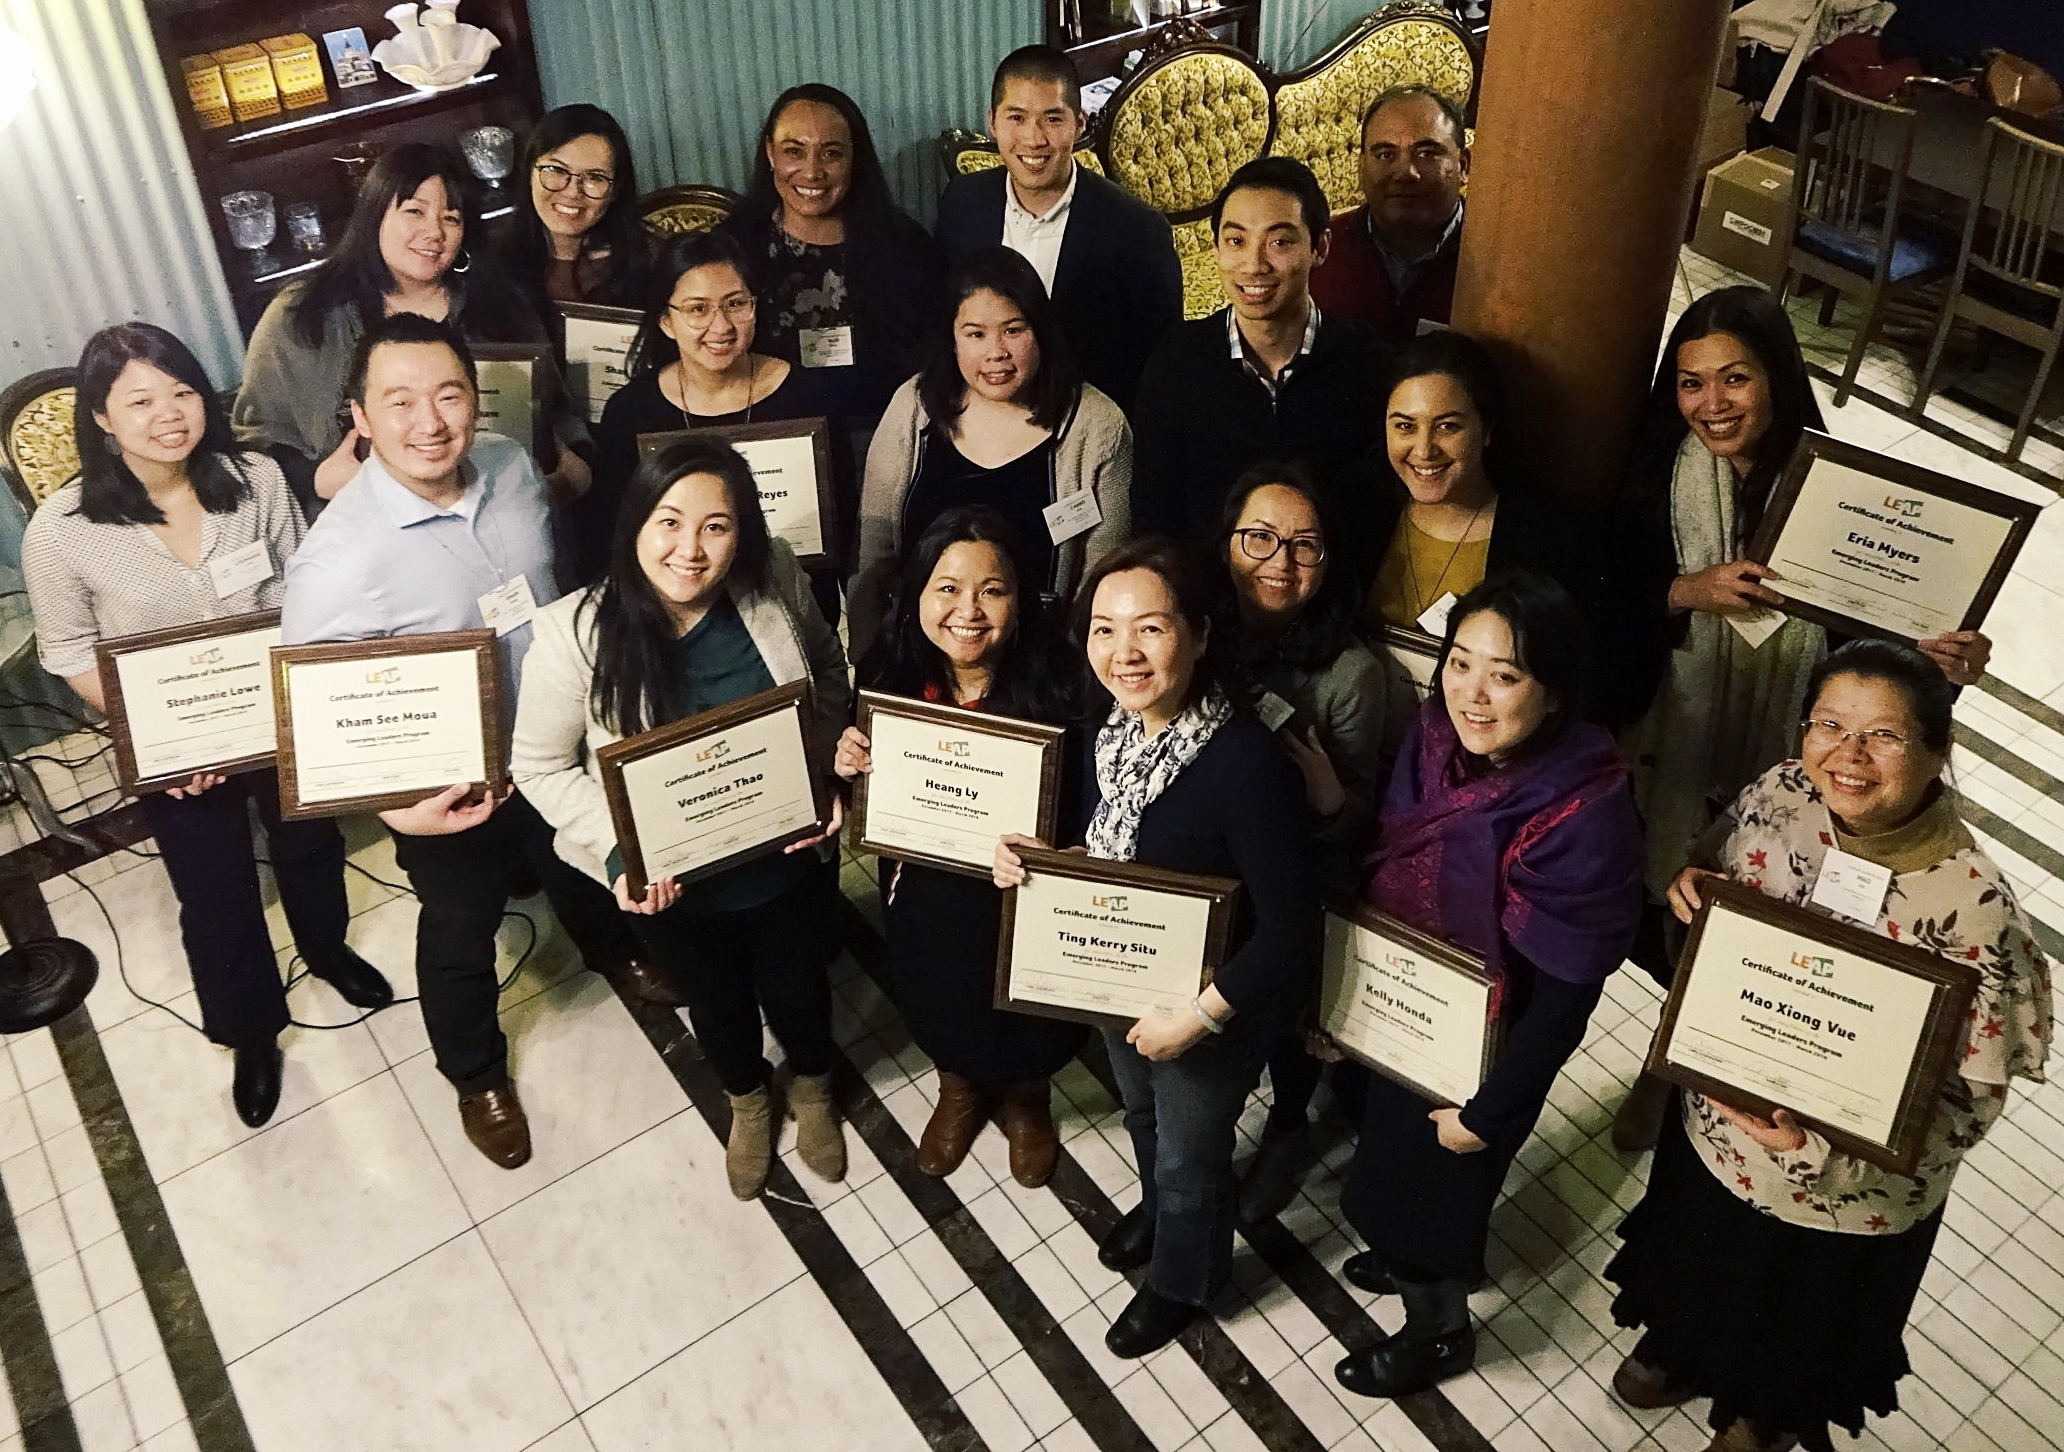 2017-18 ELP Graduation - March 22, 2018 at China Blue in NYC